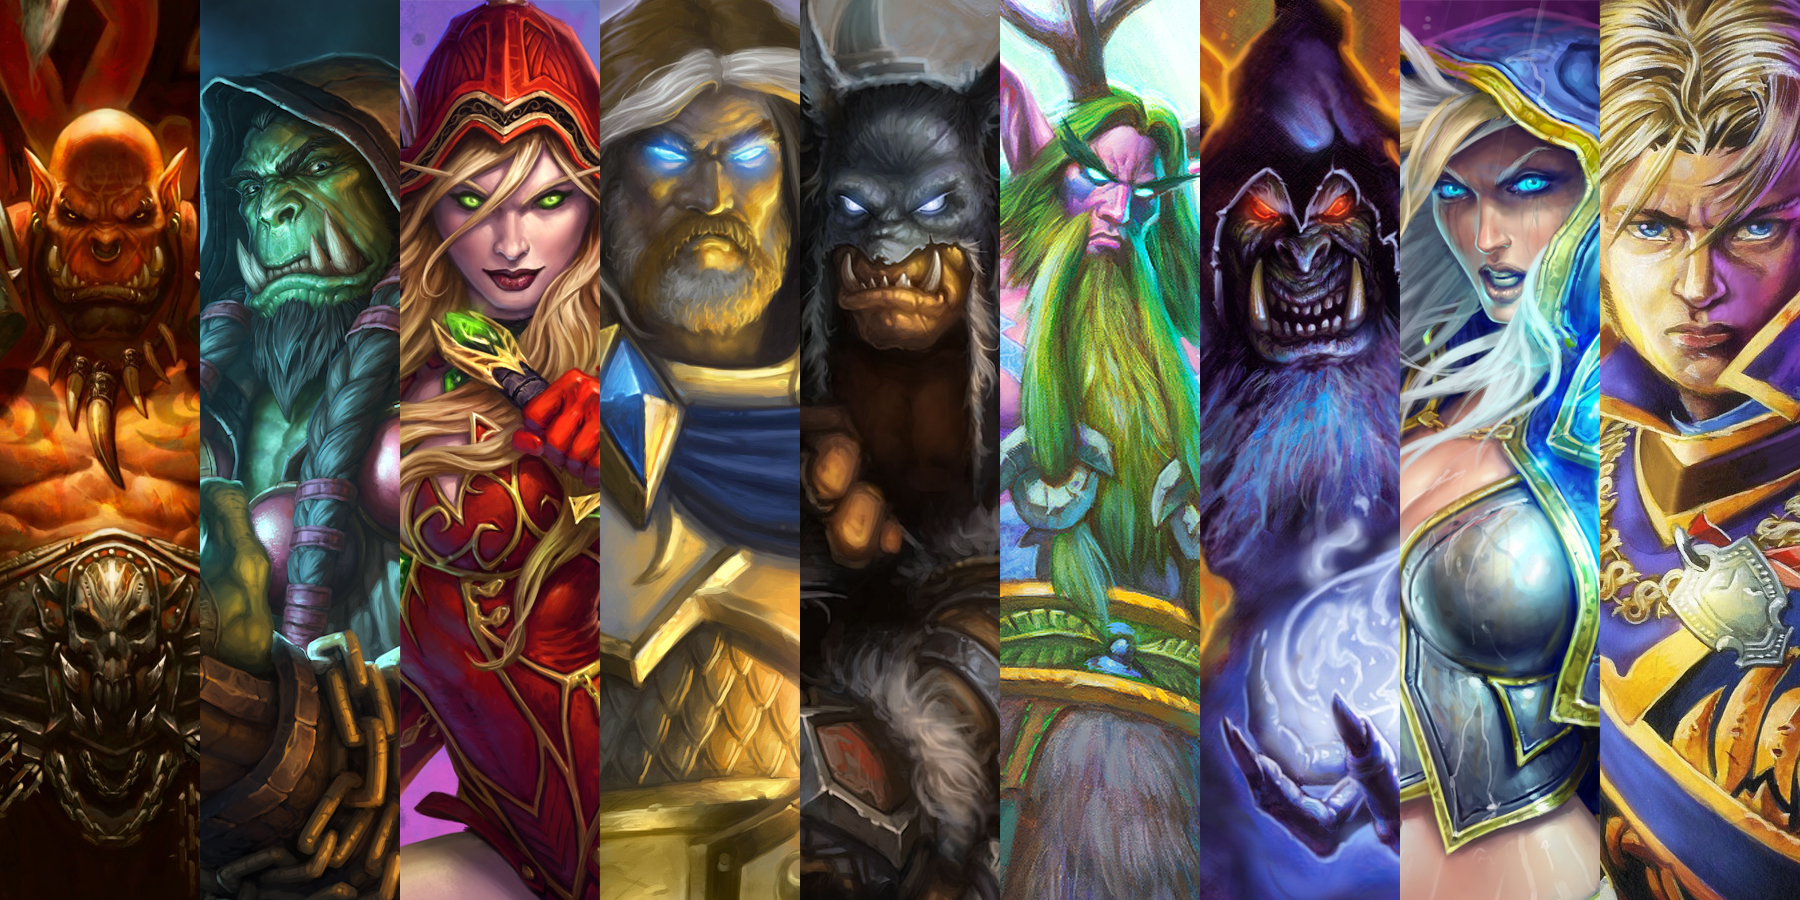 http://www.hearthstonely.com/wp-content/uploads/2015/07/Classes-1.png